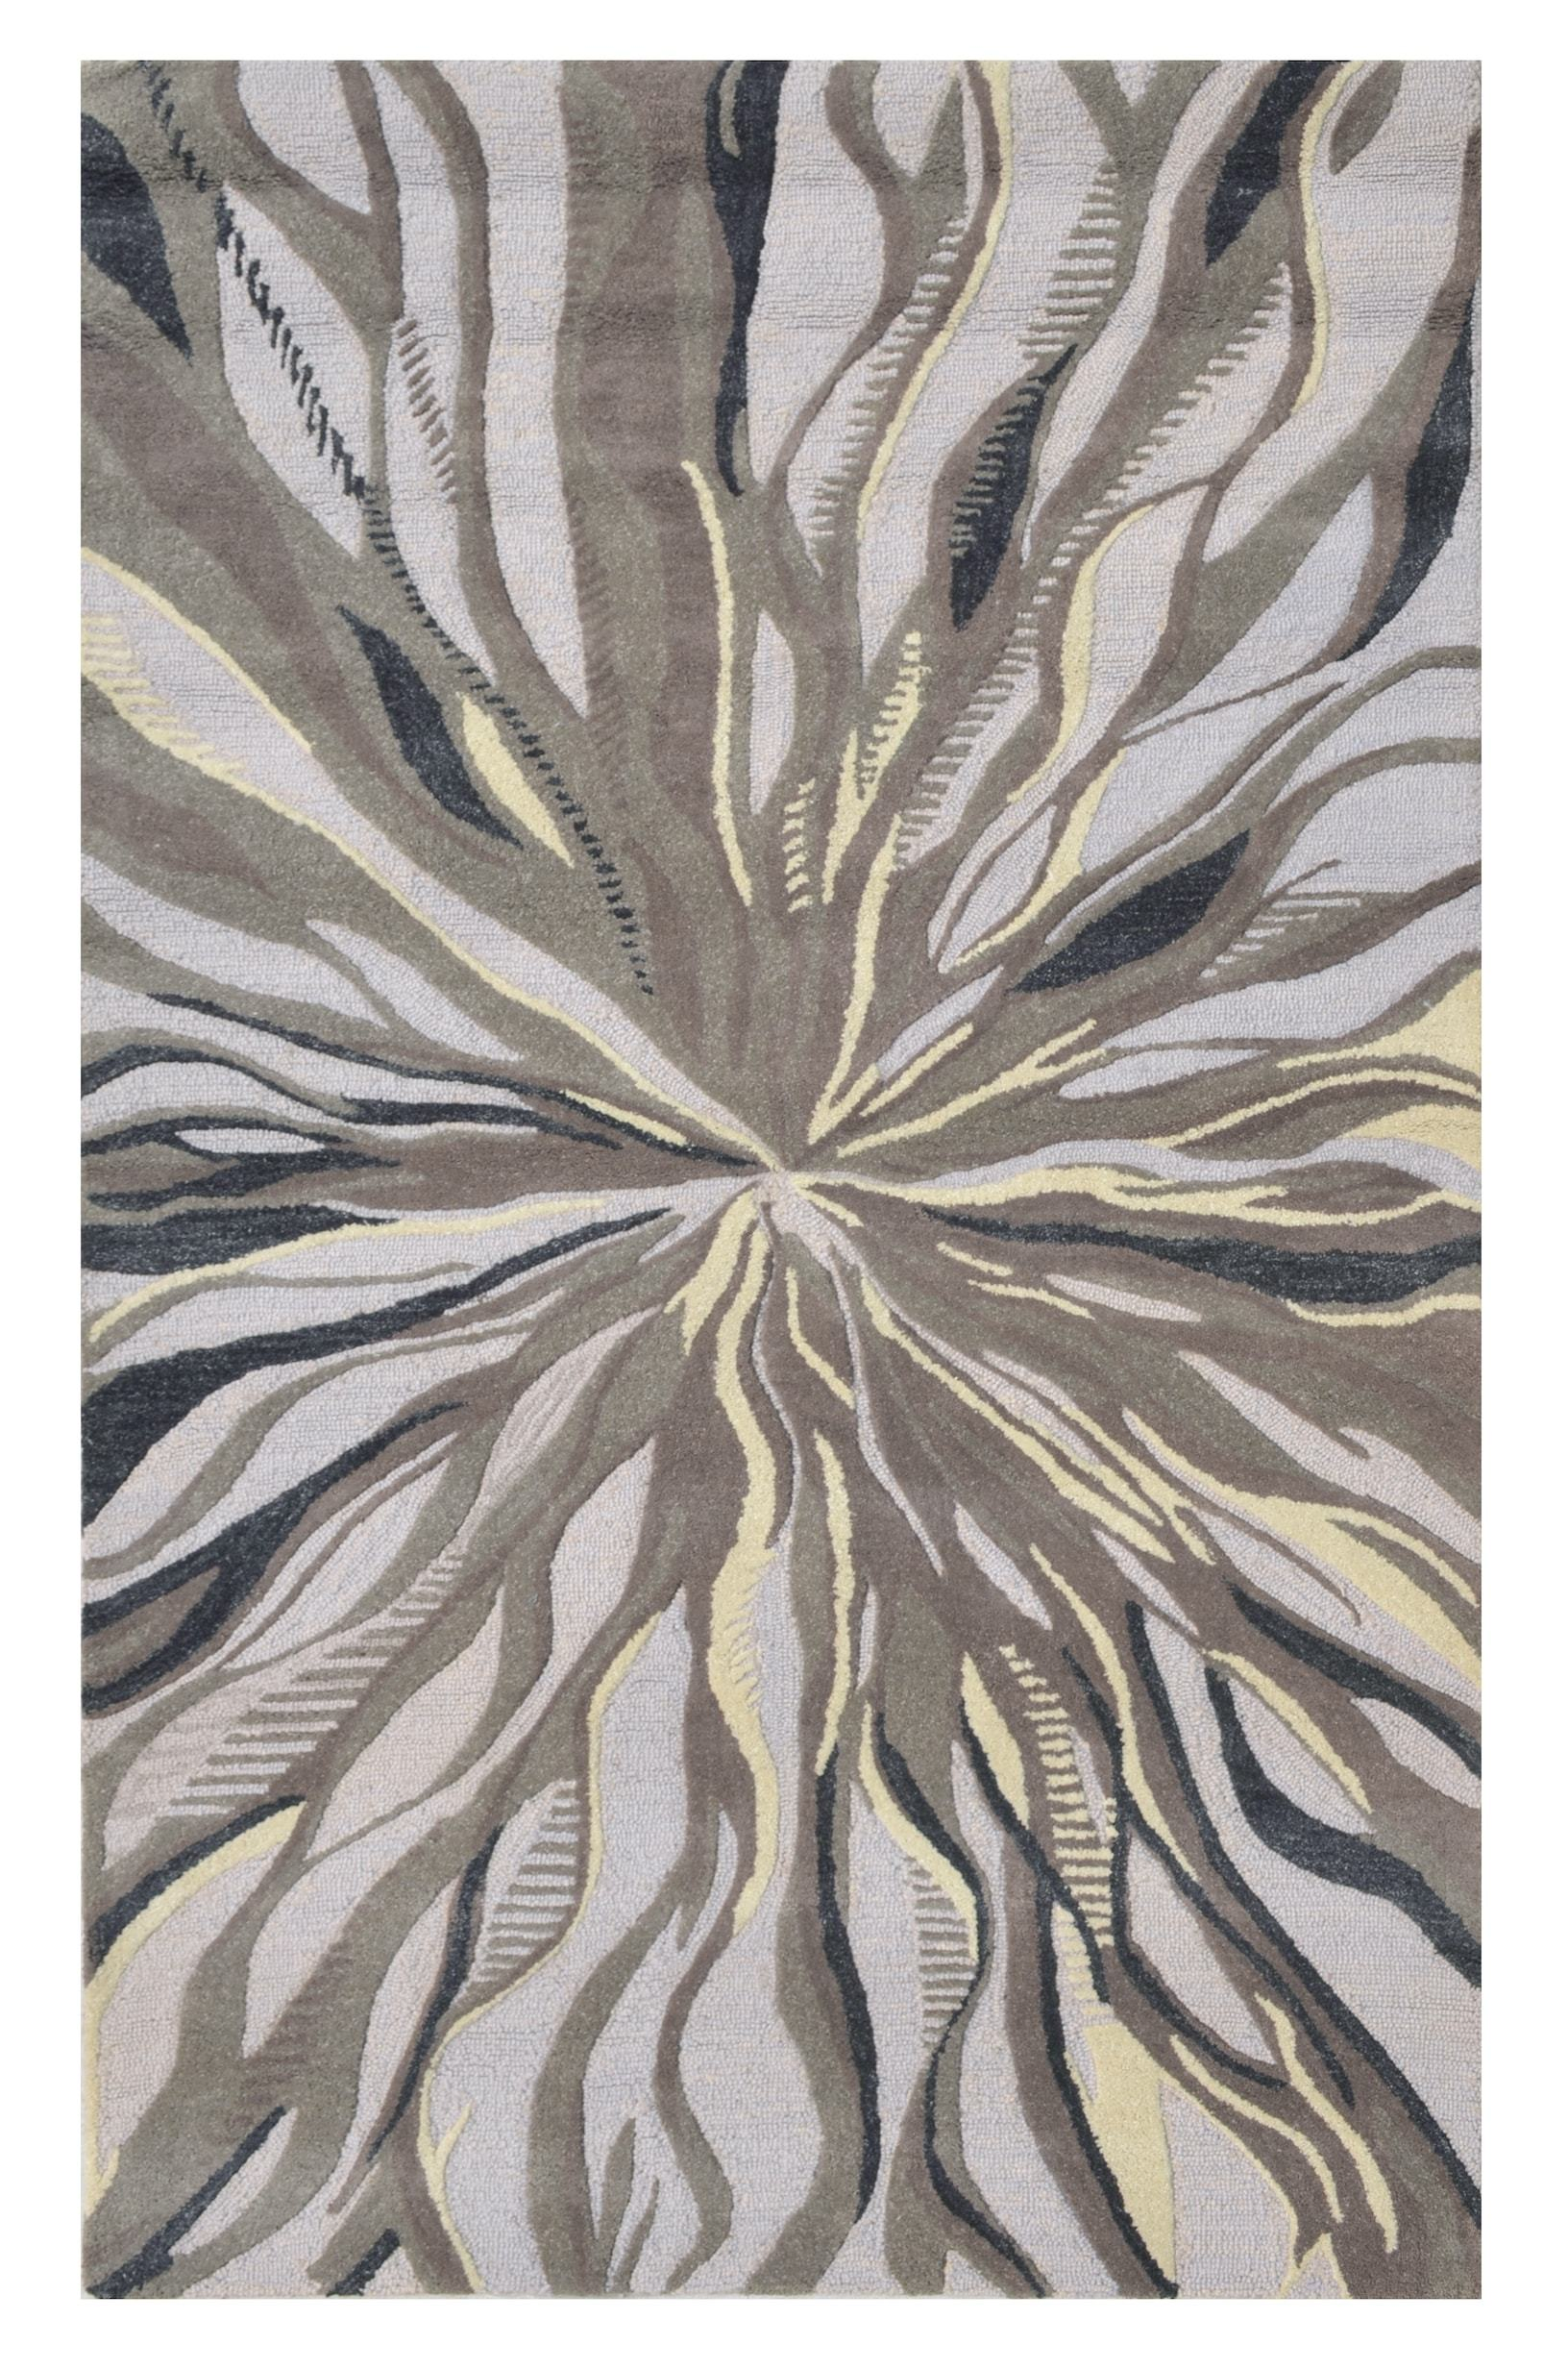 Perla Hand Tufted Rug by House of Rugs - Home Artisan